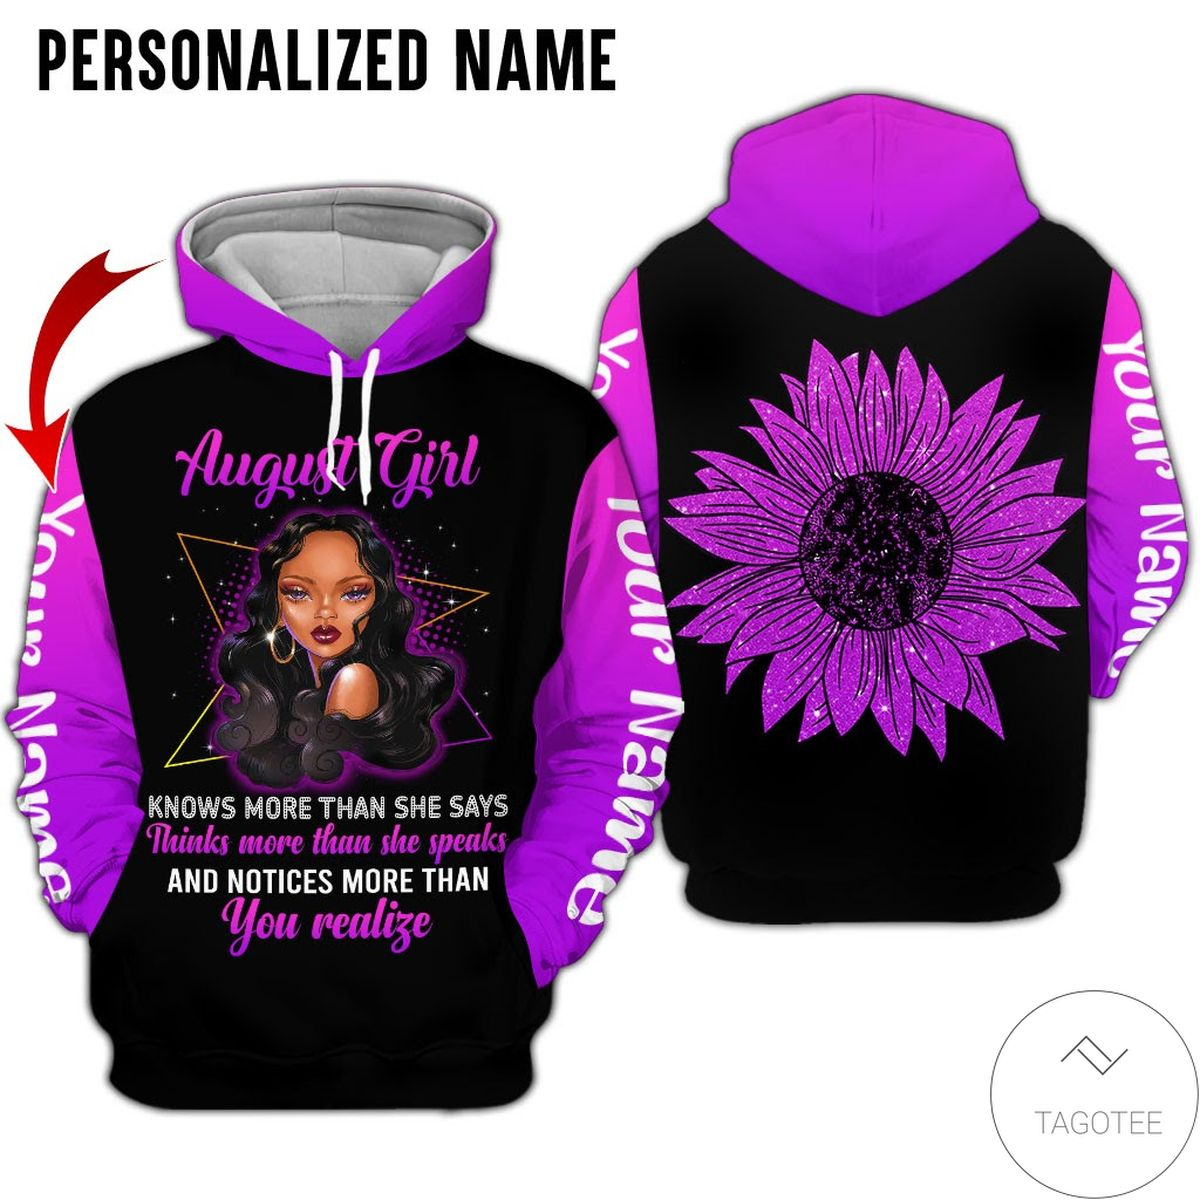 Personalized Name August Girl Know More Than She Says All Over Print Hoodie